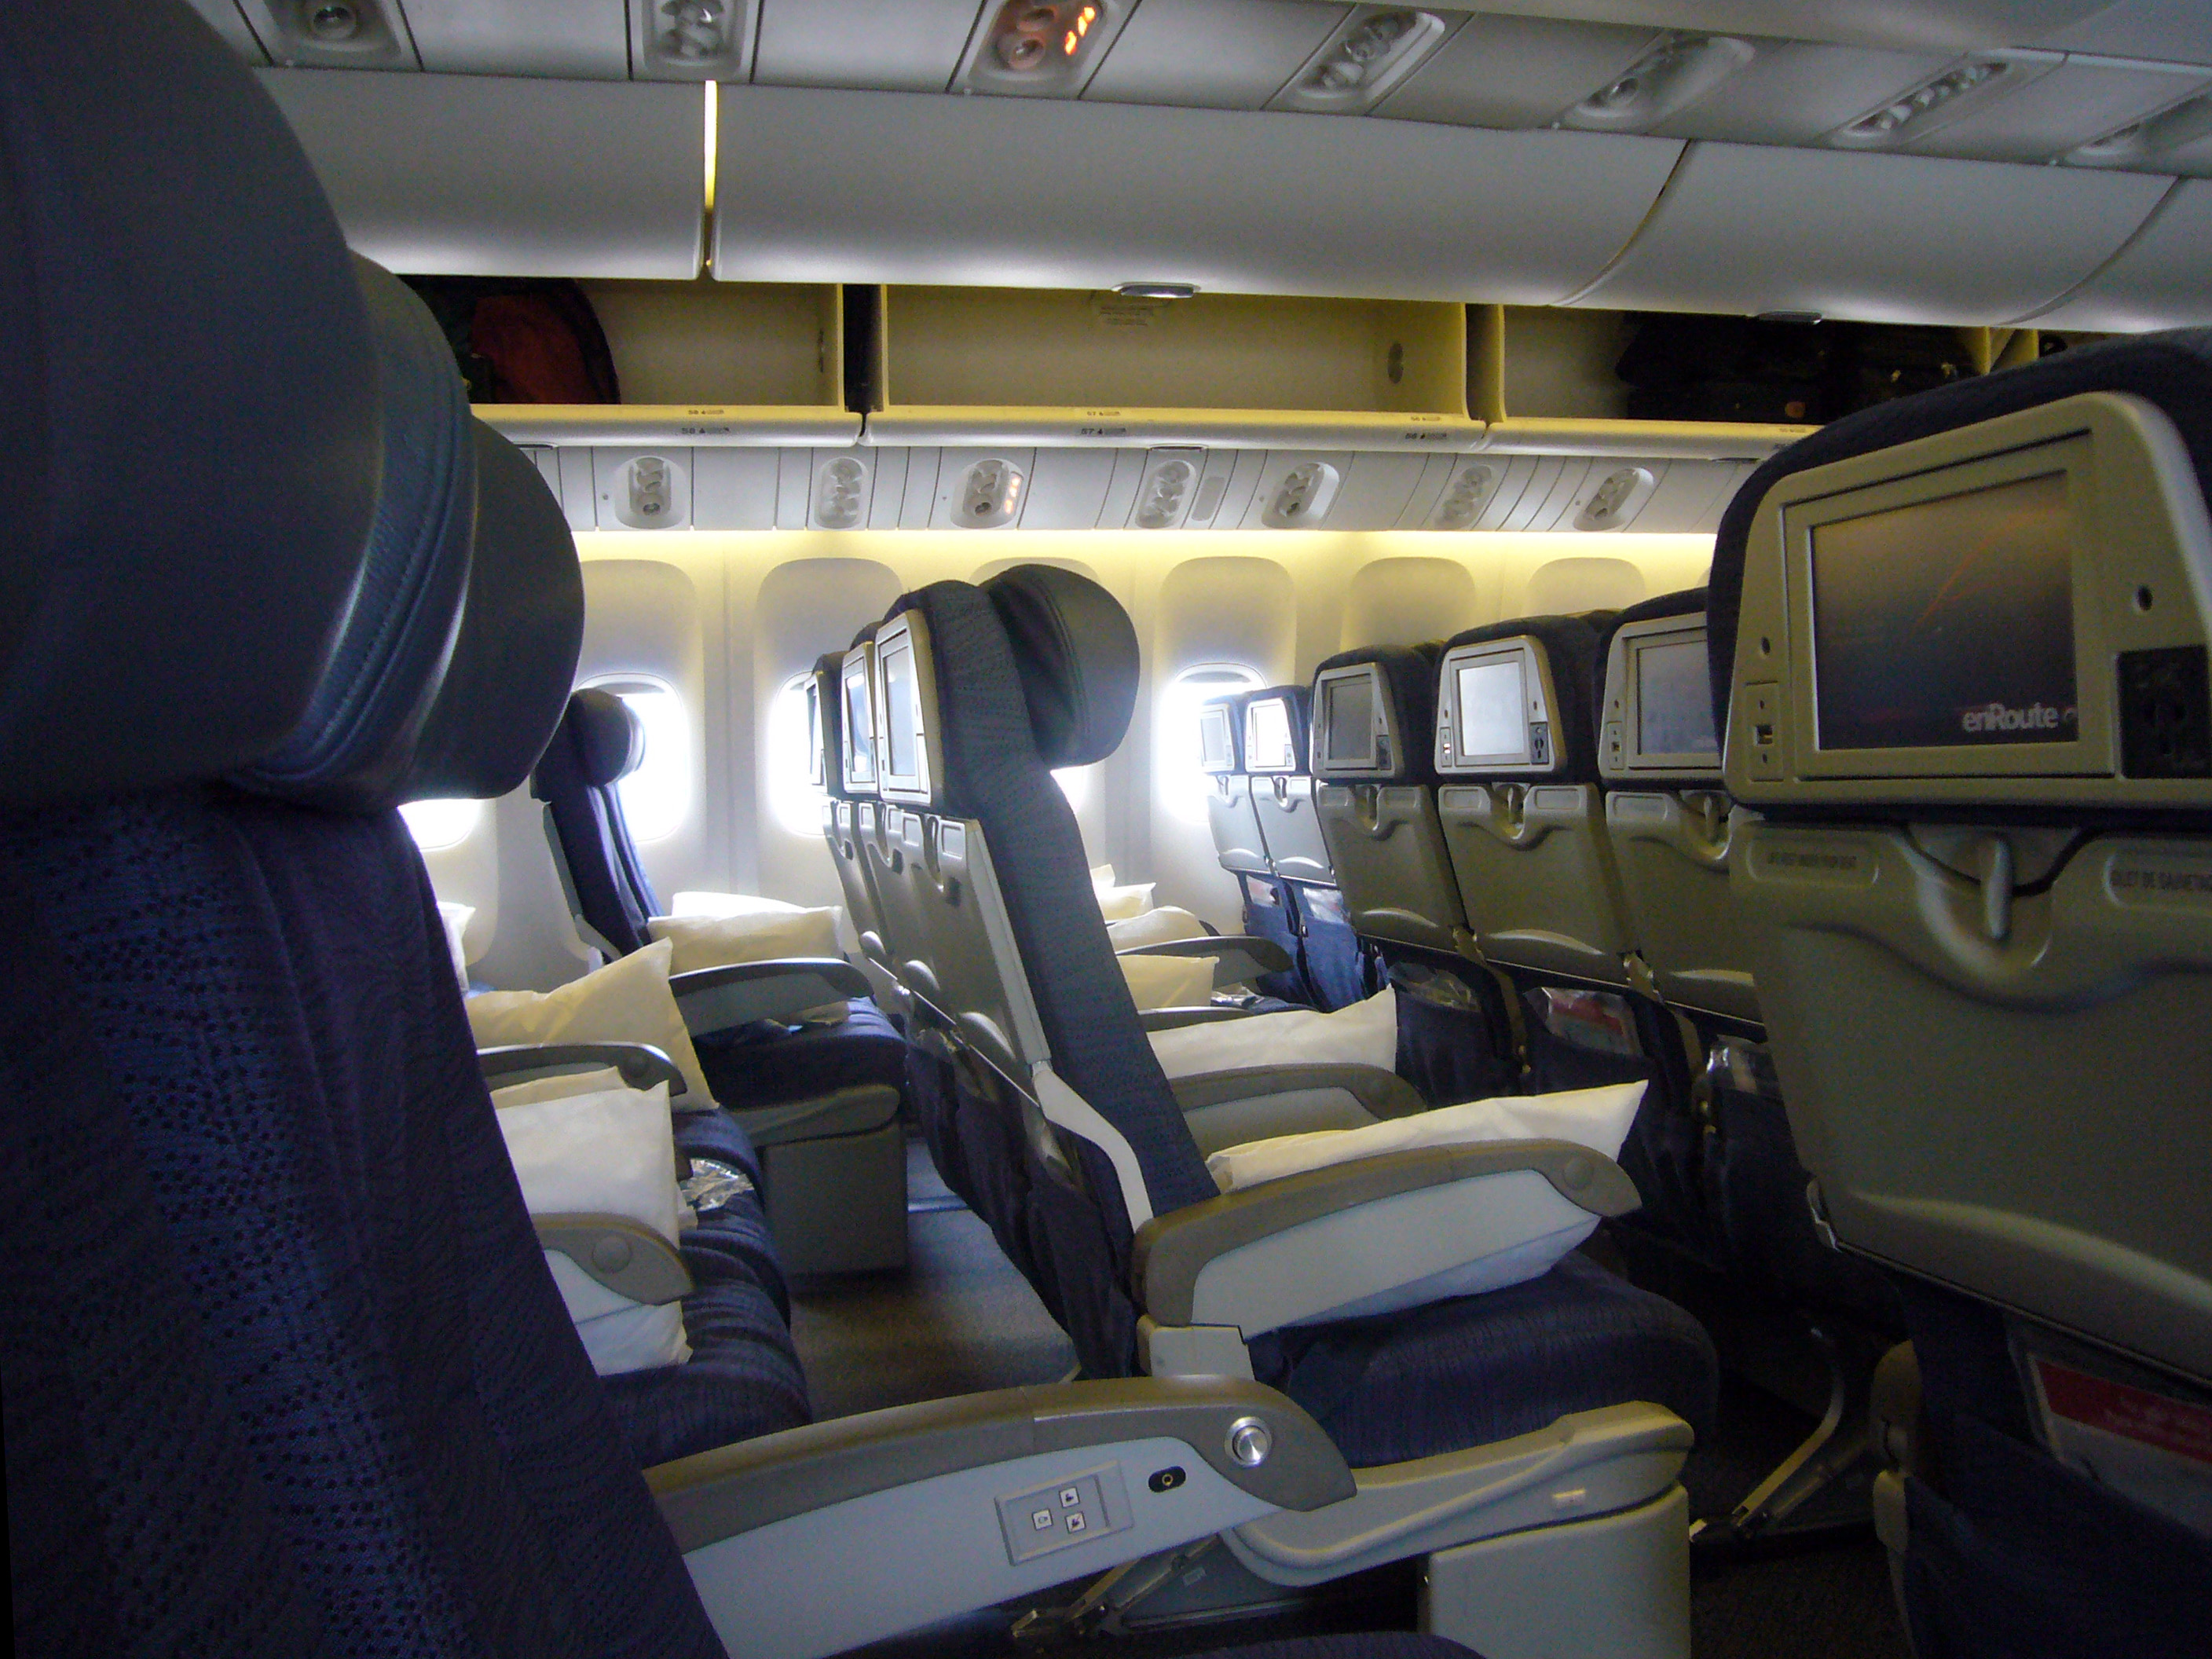 Photo interieur avion air 28 images j ai test 233 pour for Air france vol interieur